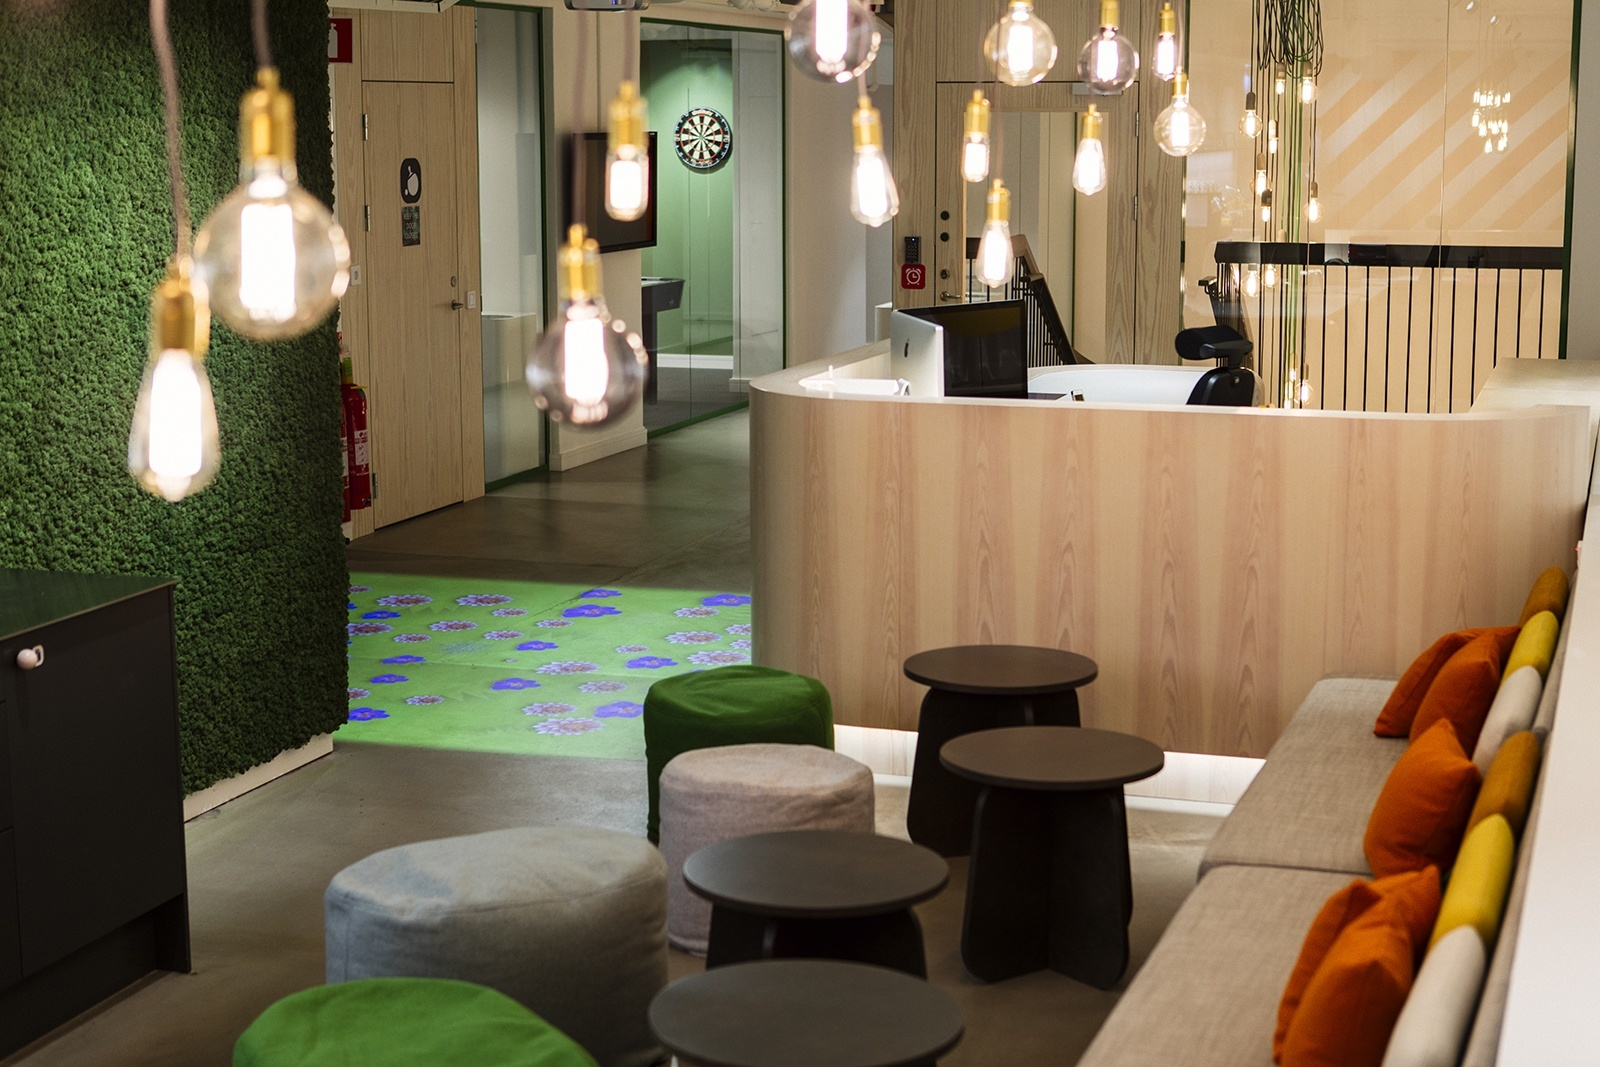 stockholm office.  office lobby and stockholm office f